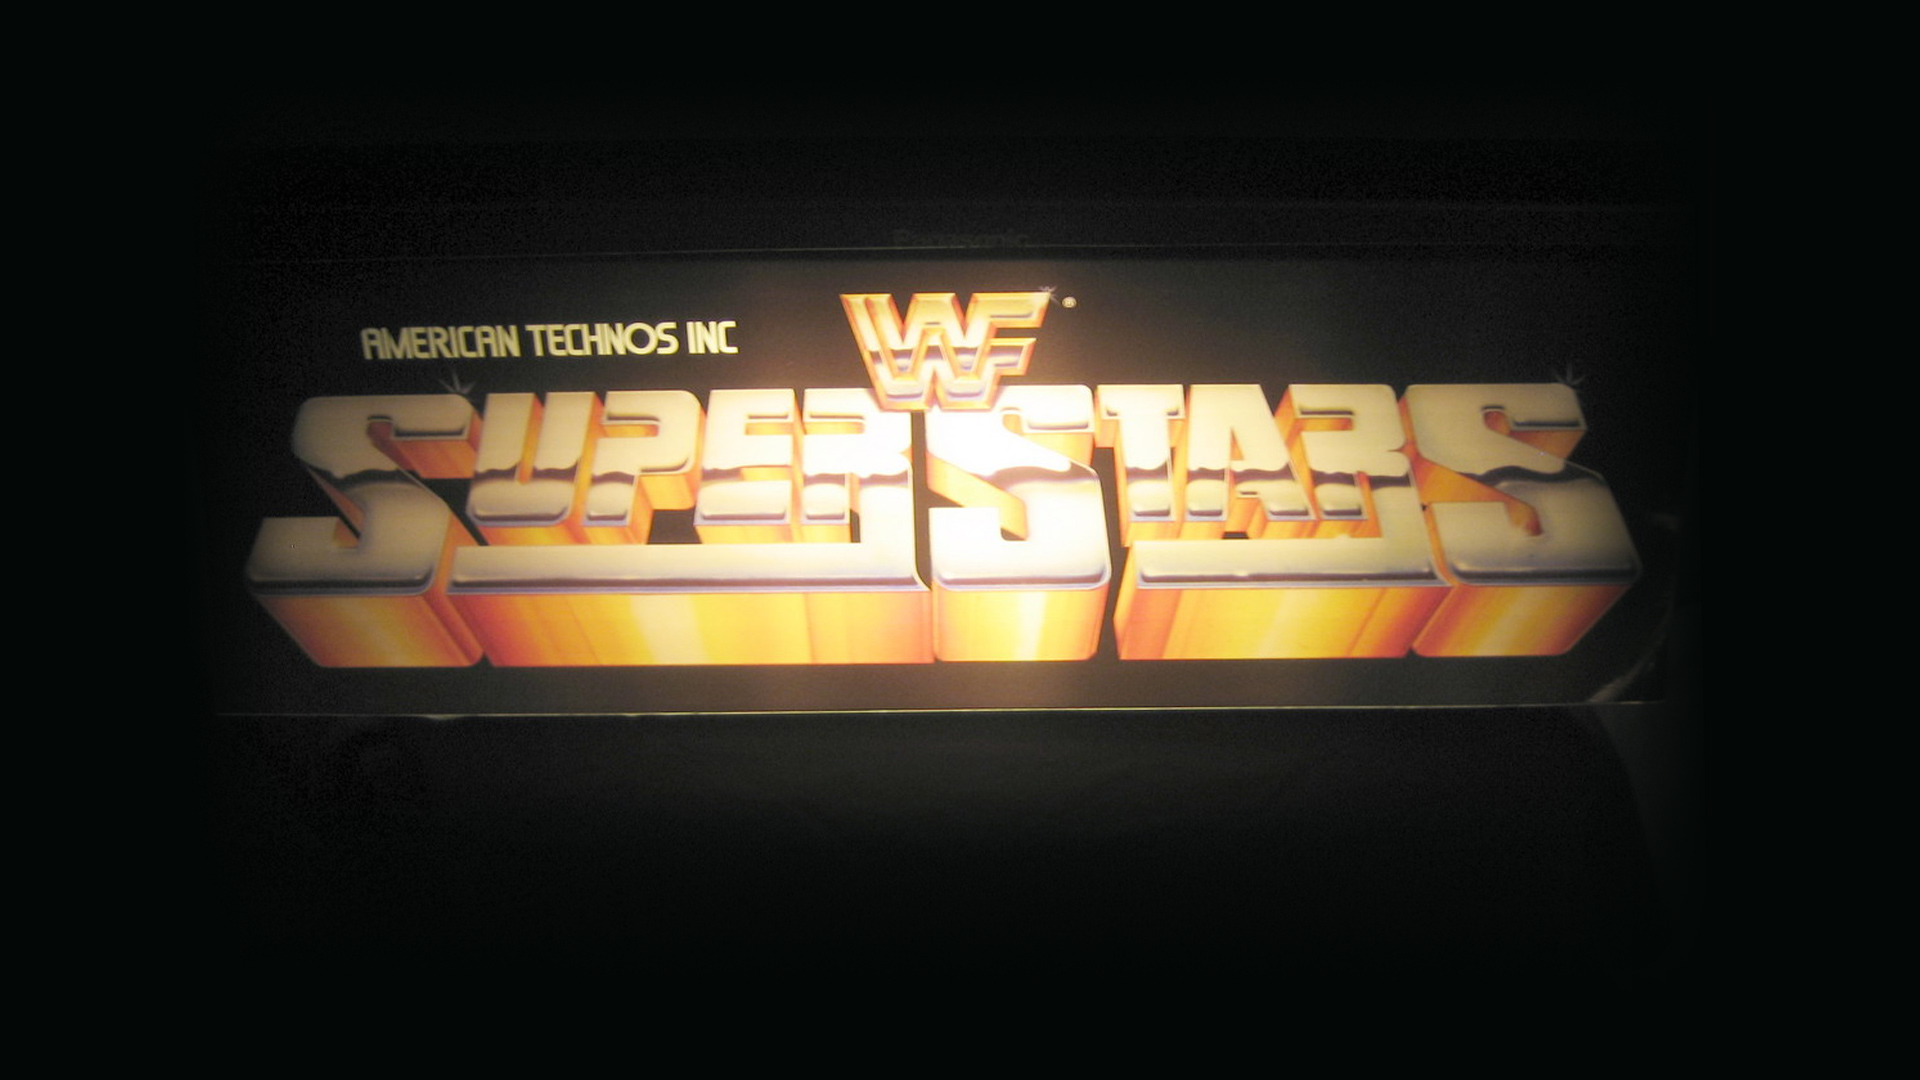 AJAREPEDIA: W de WWF Superstars